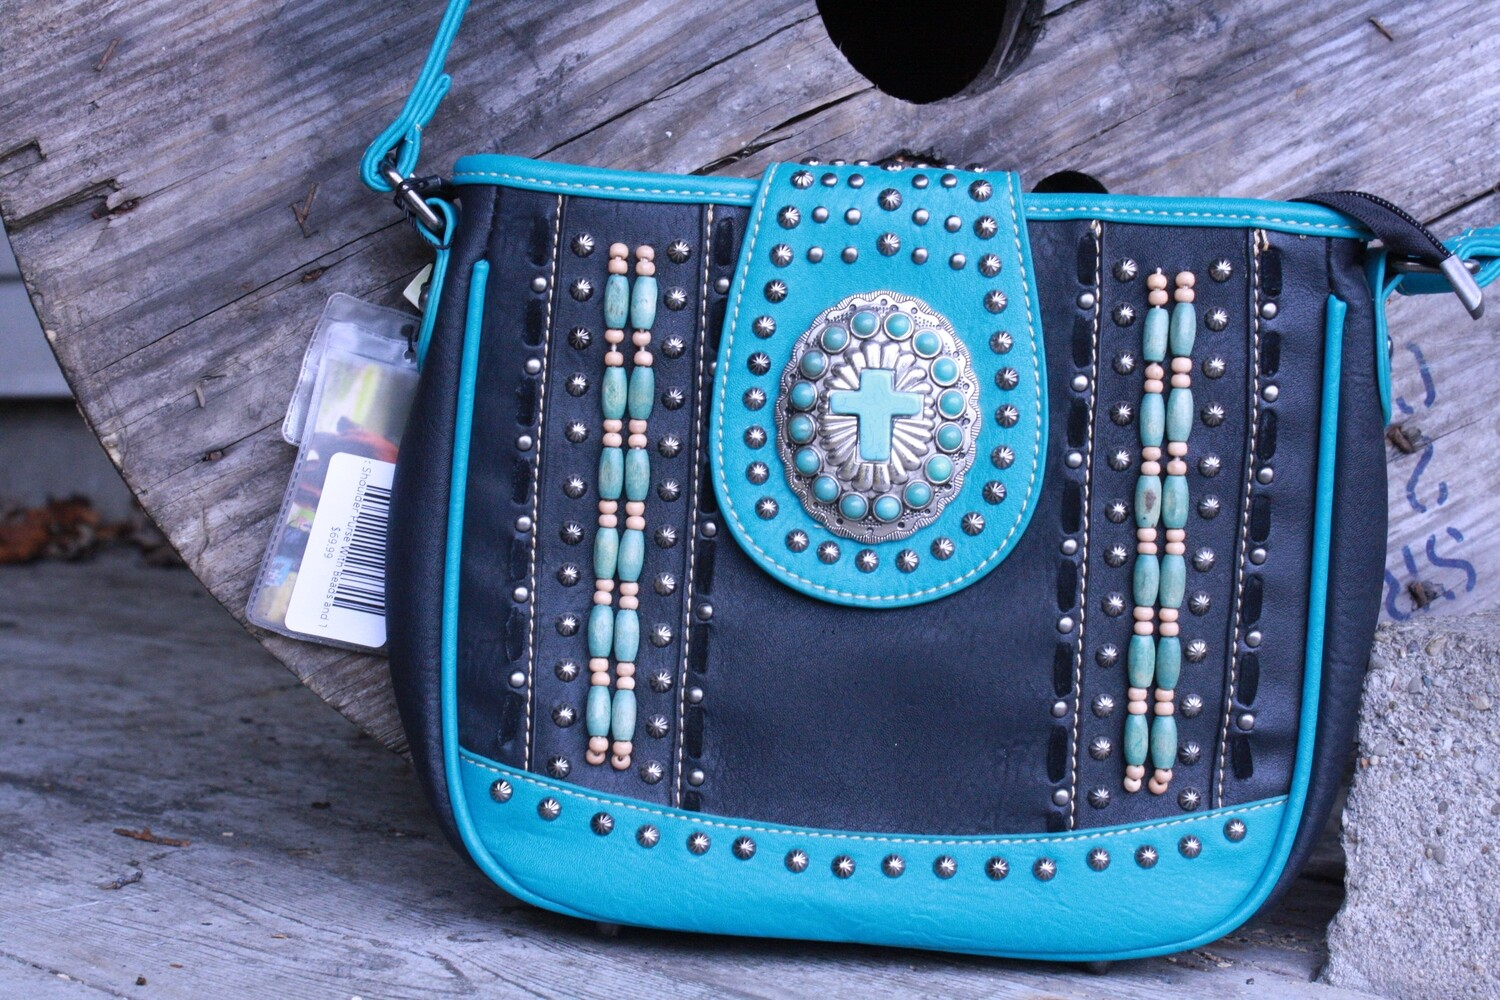 Montana West Teal/Black Shoulder Purse With Beads and Teal Cross